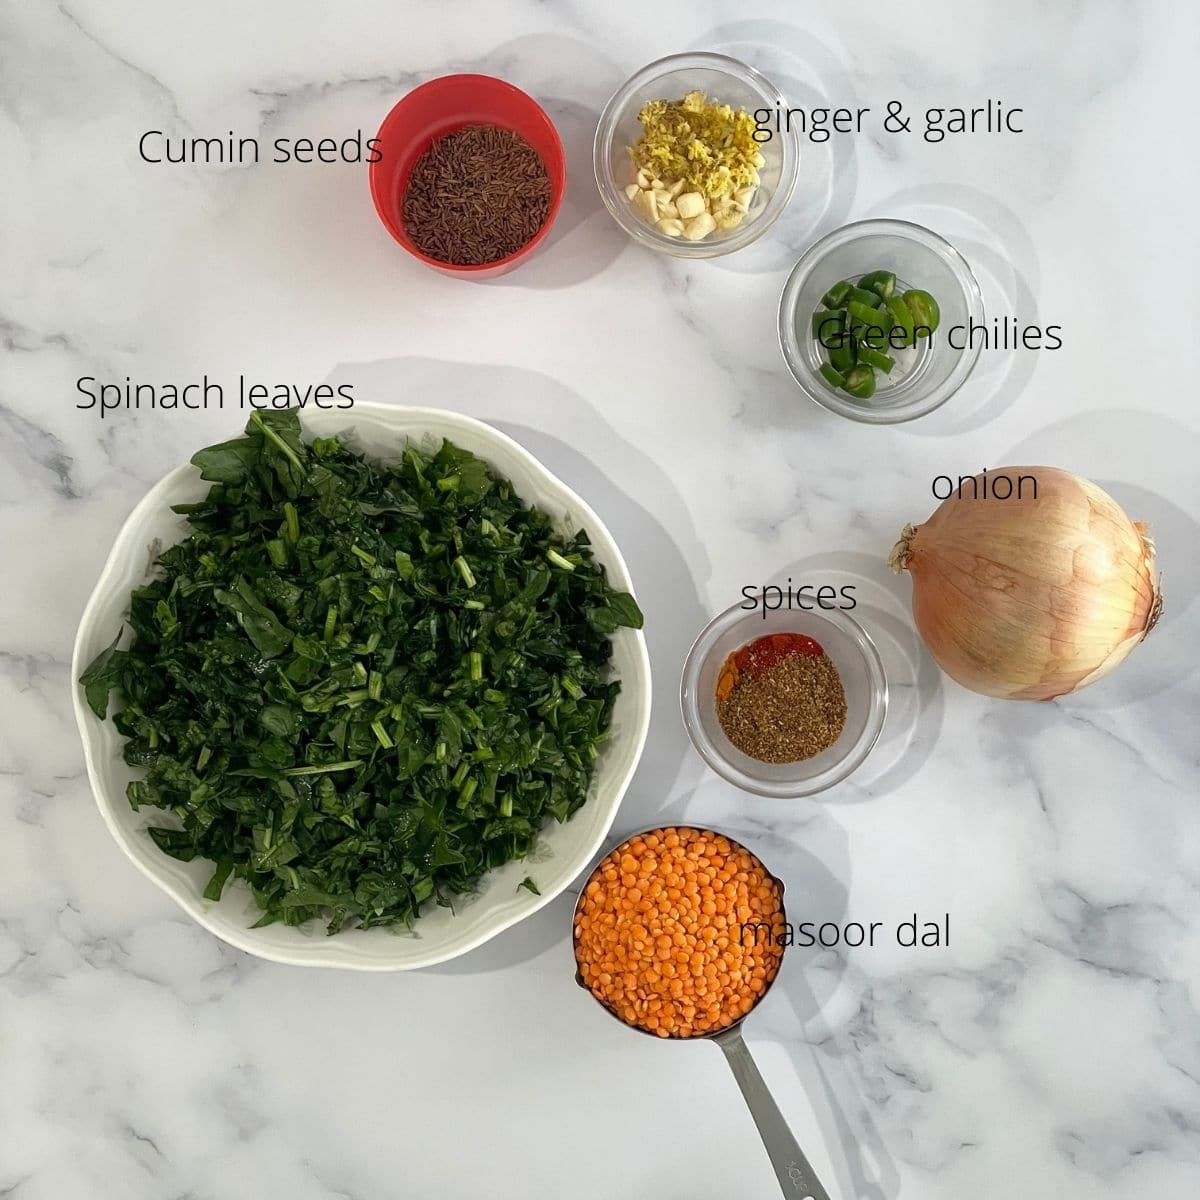 Spinach, onion, cumin seeds, and red lentils are on the table for dal recipe.